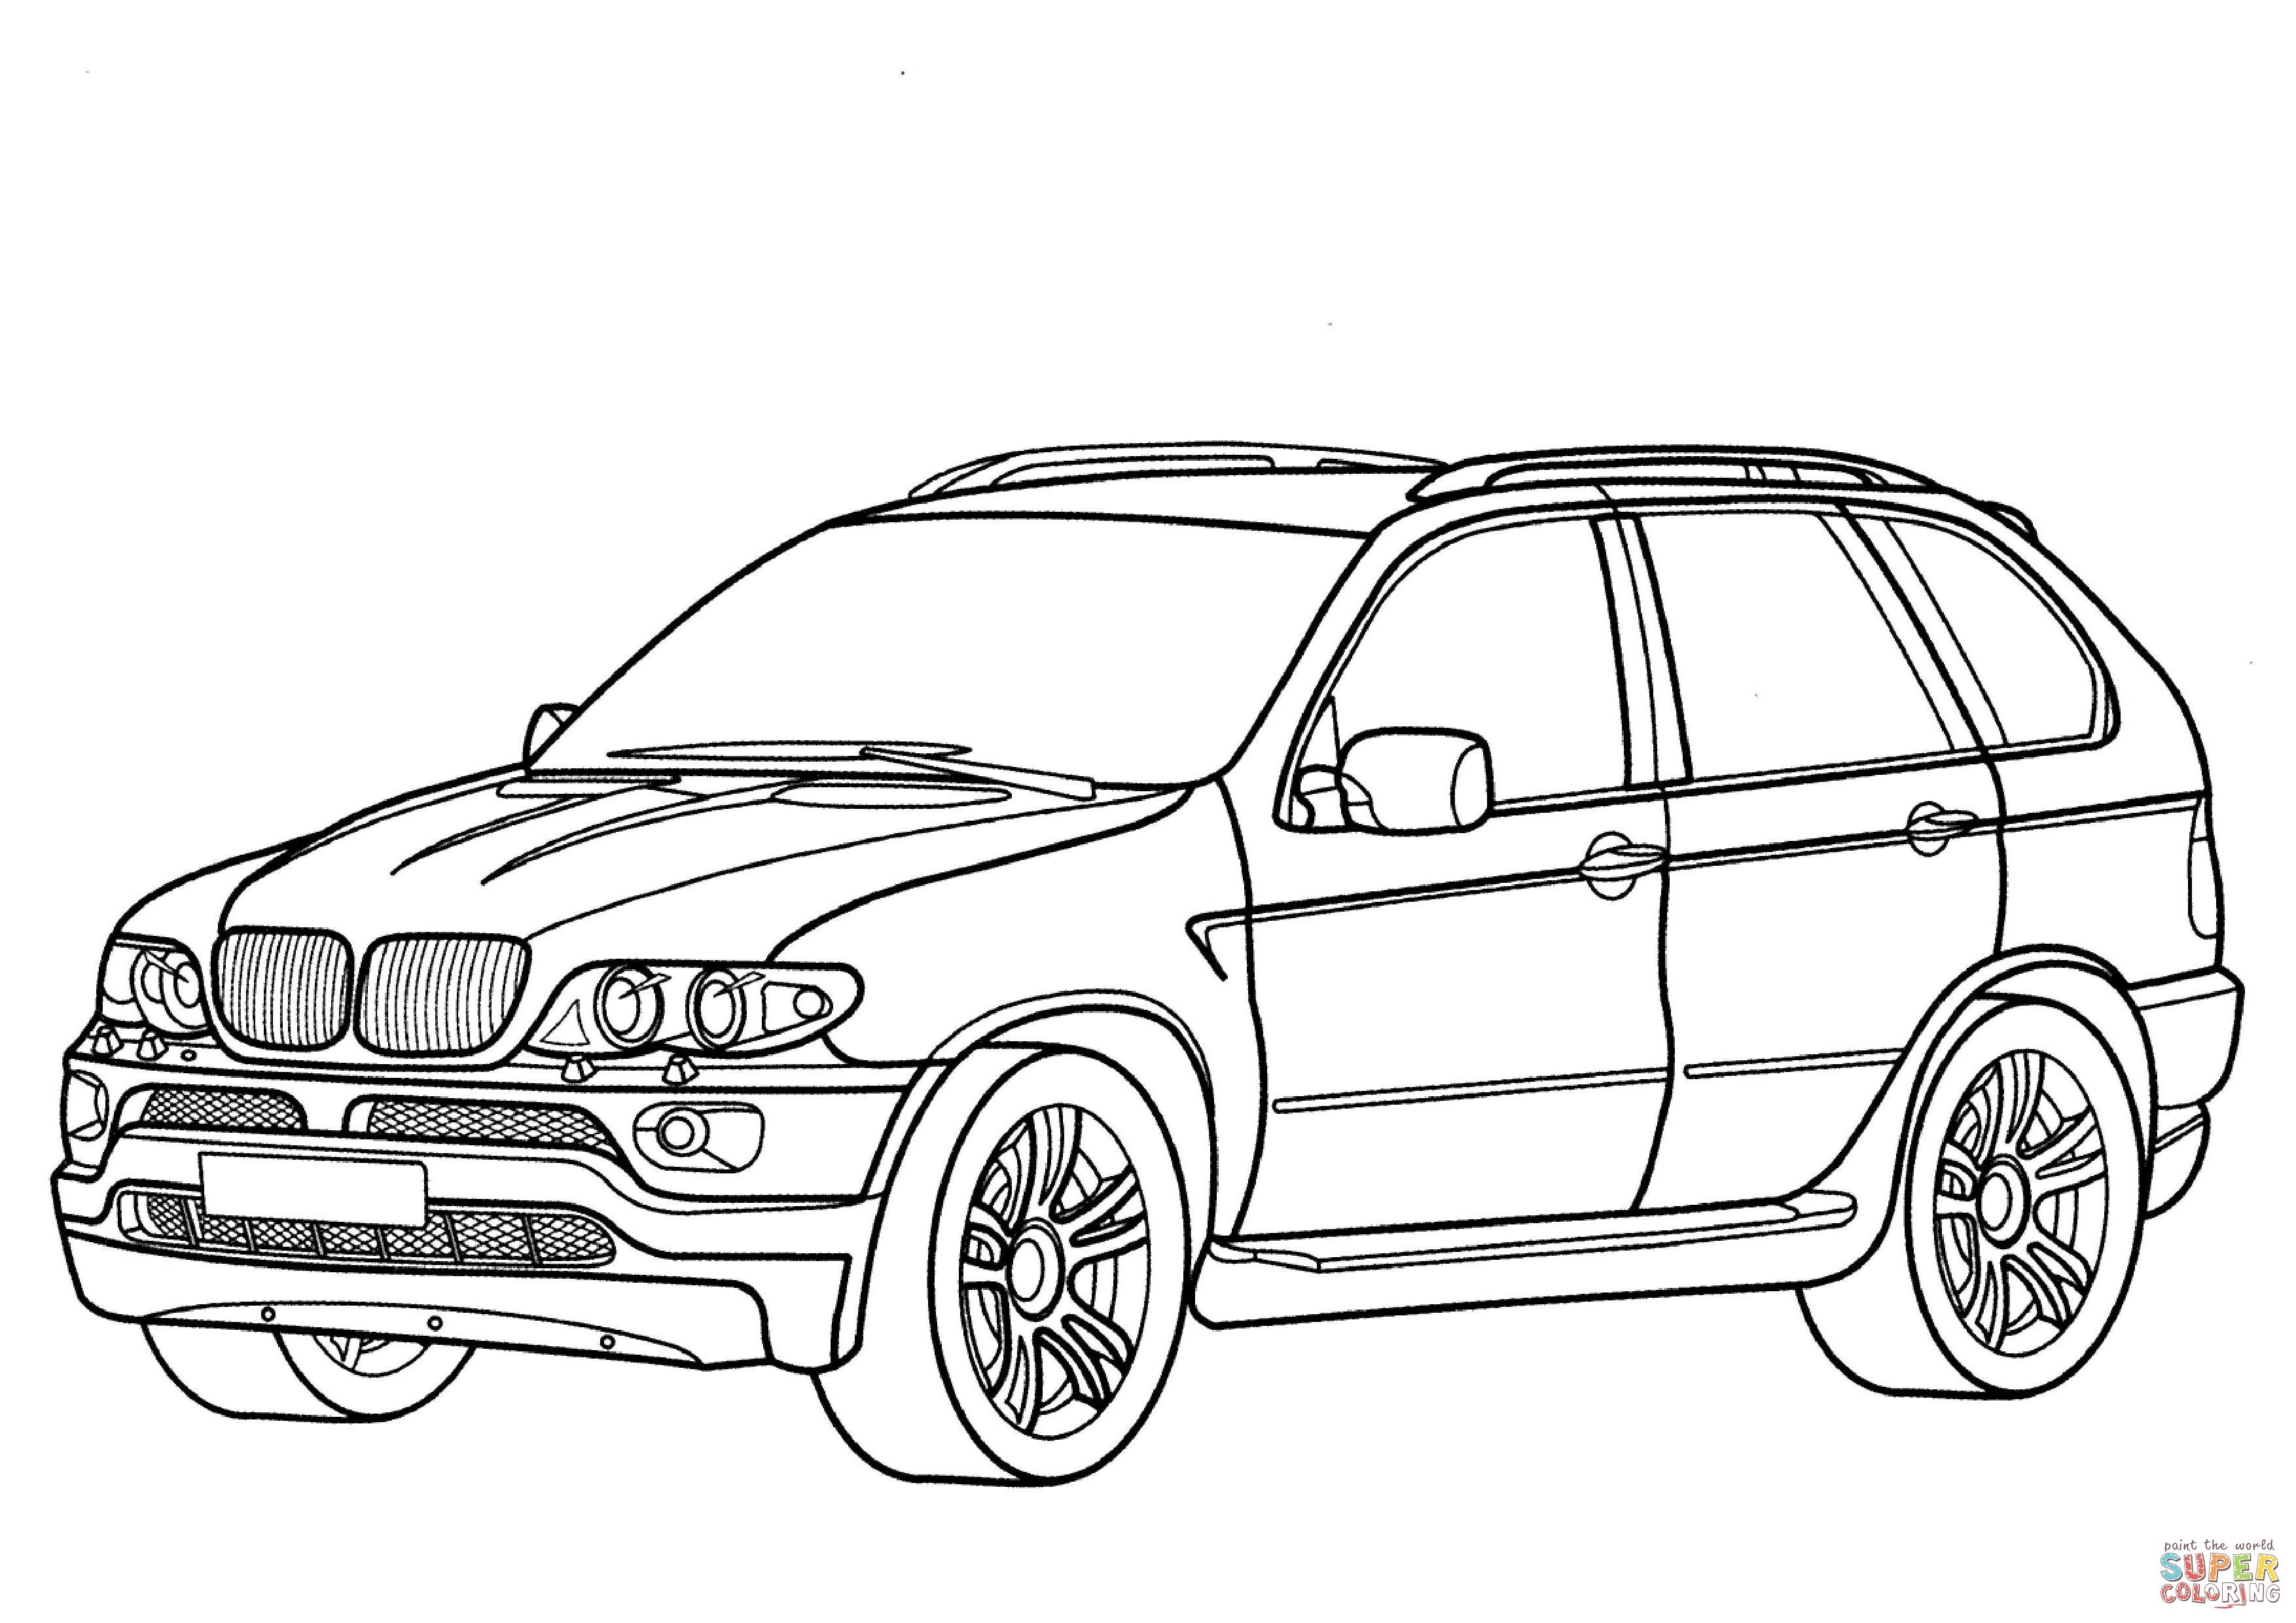 bmw race car coloring pages fascinating coloring pages bmw cars picture of printable coloring car pages race bmw